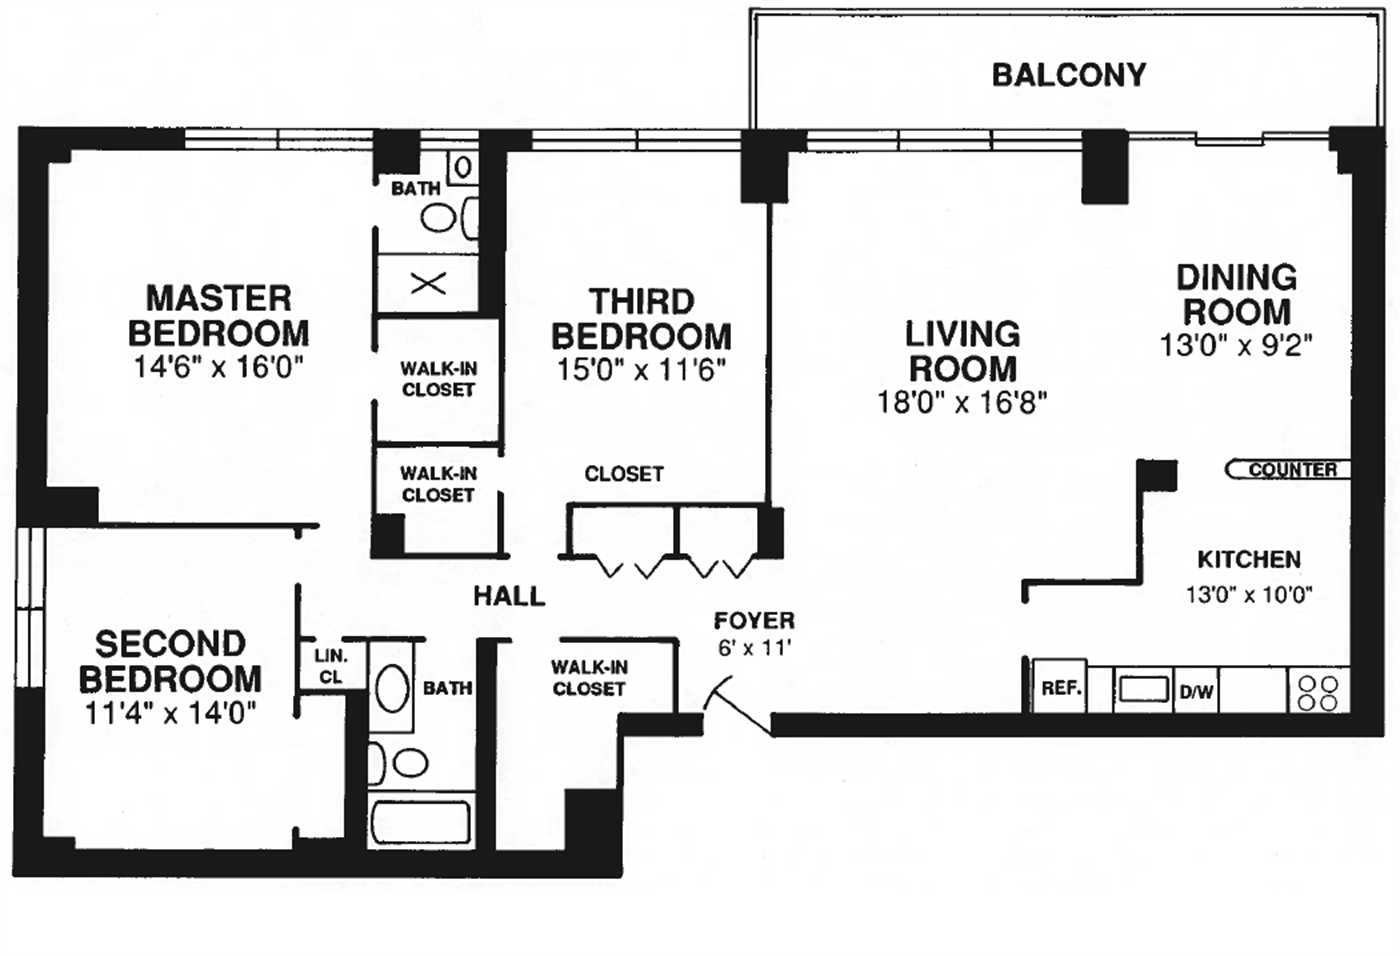 20 unique free floor plan templates house plans 6351 for Floor plan blueprints free